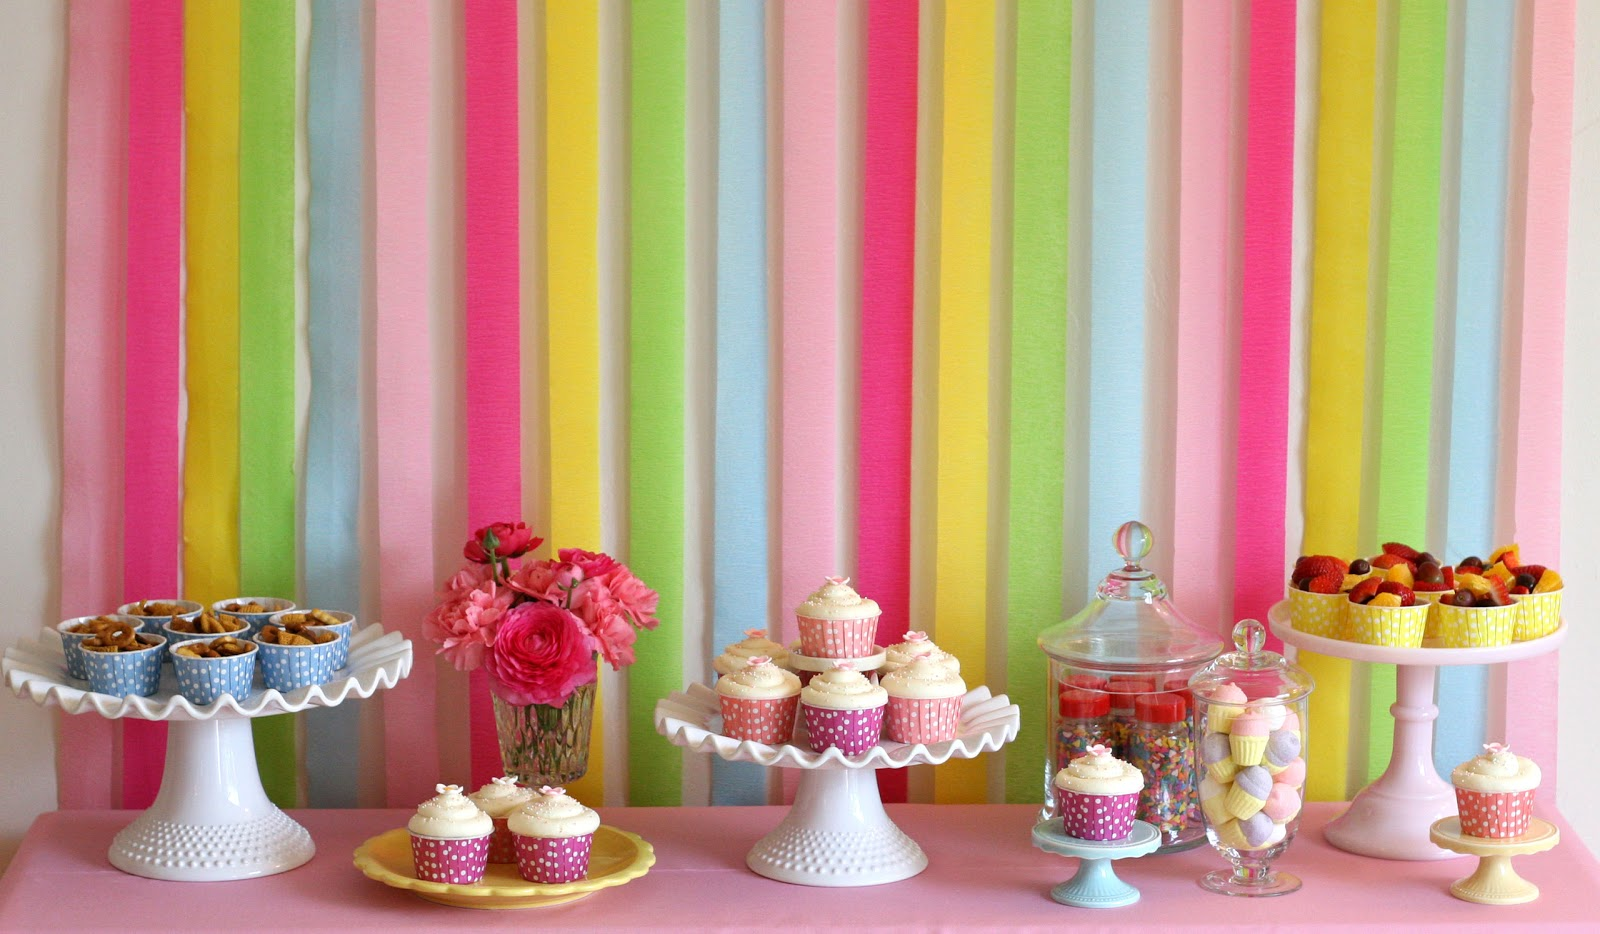 Grace's Cake Decorating Party » Glorious Treats